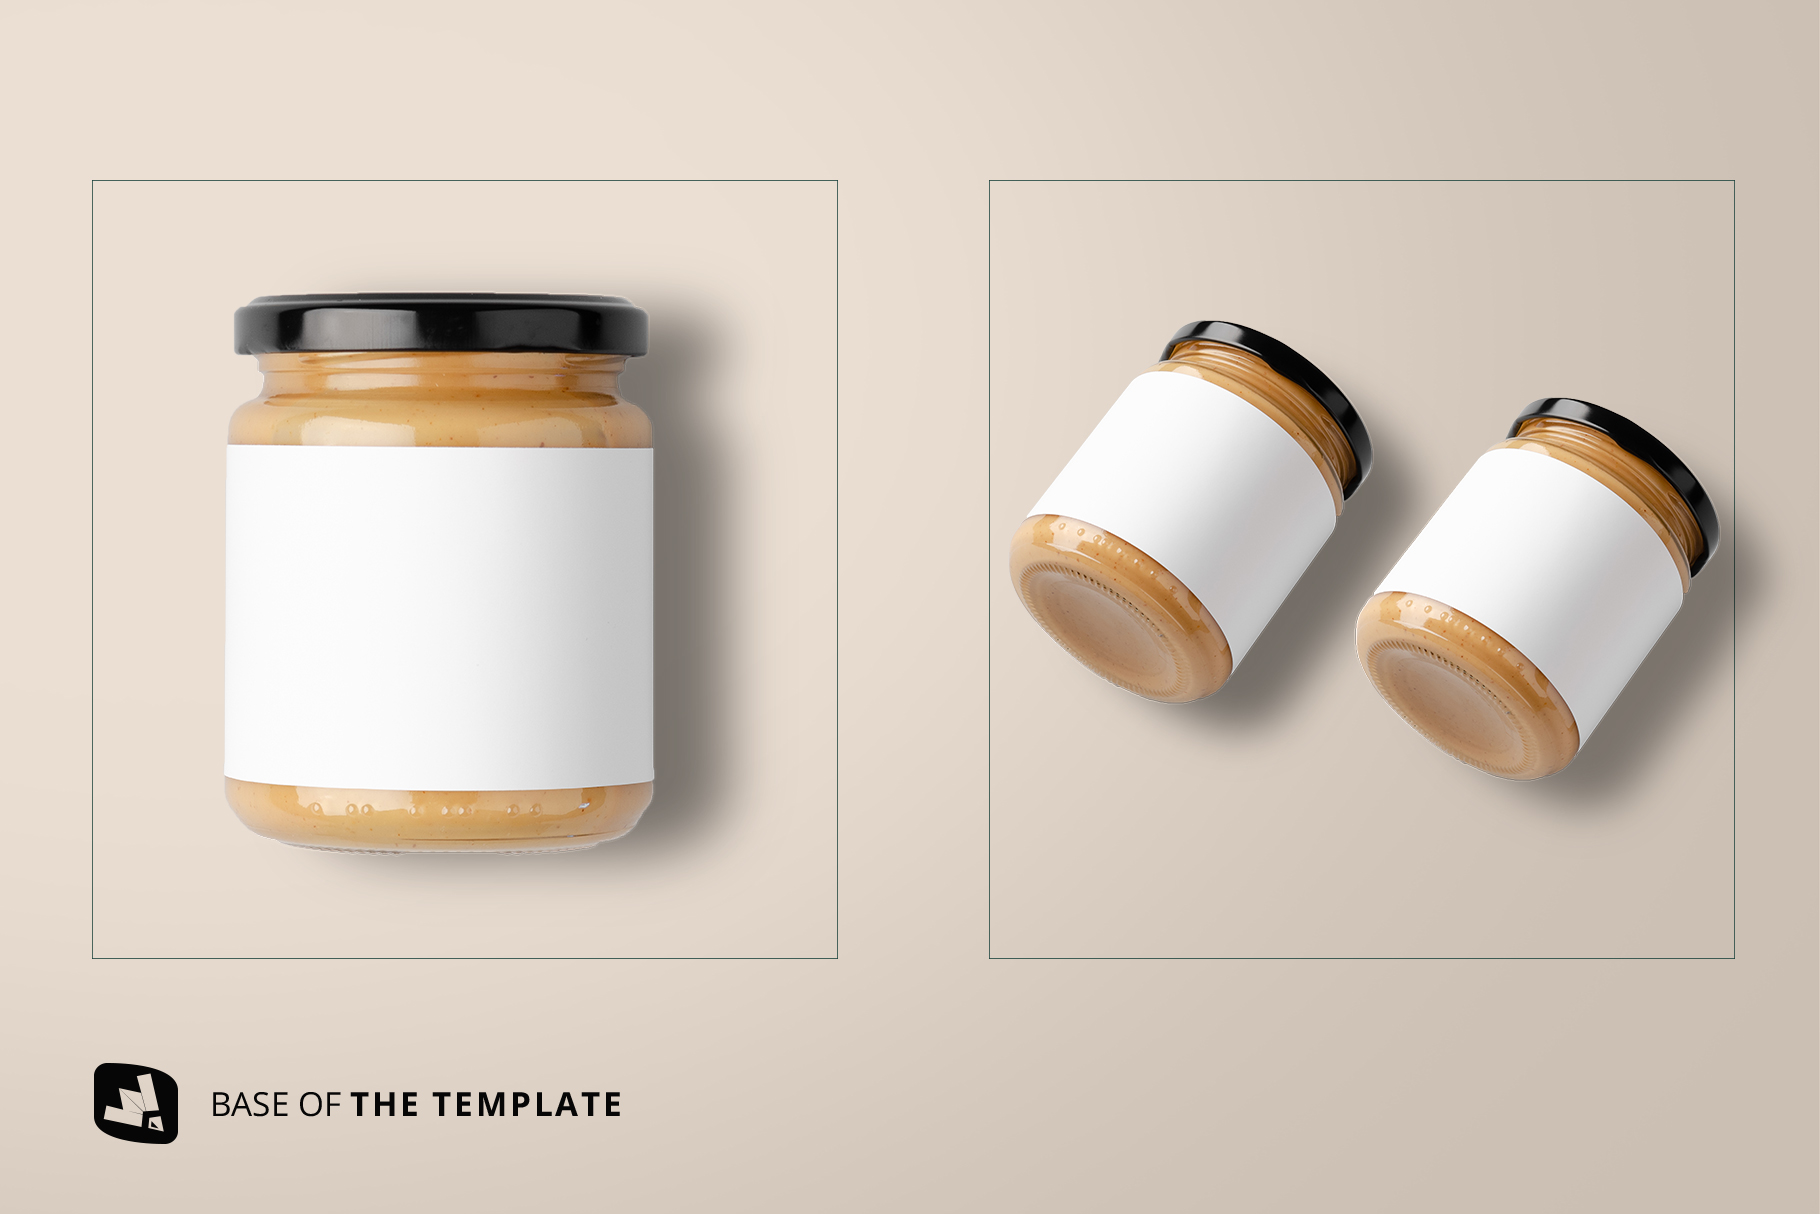 base image of the organic nut butter packaging mockup